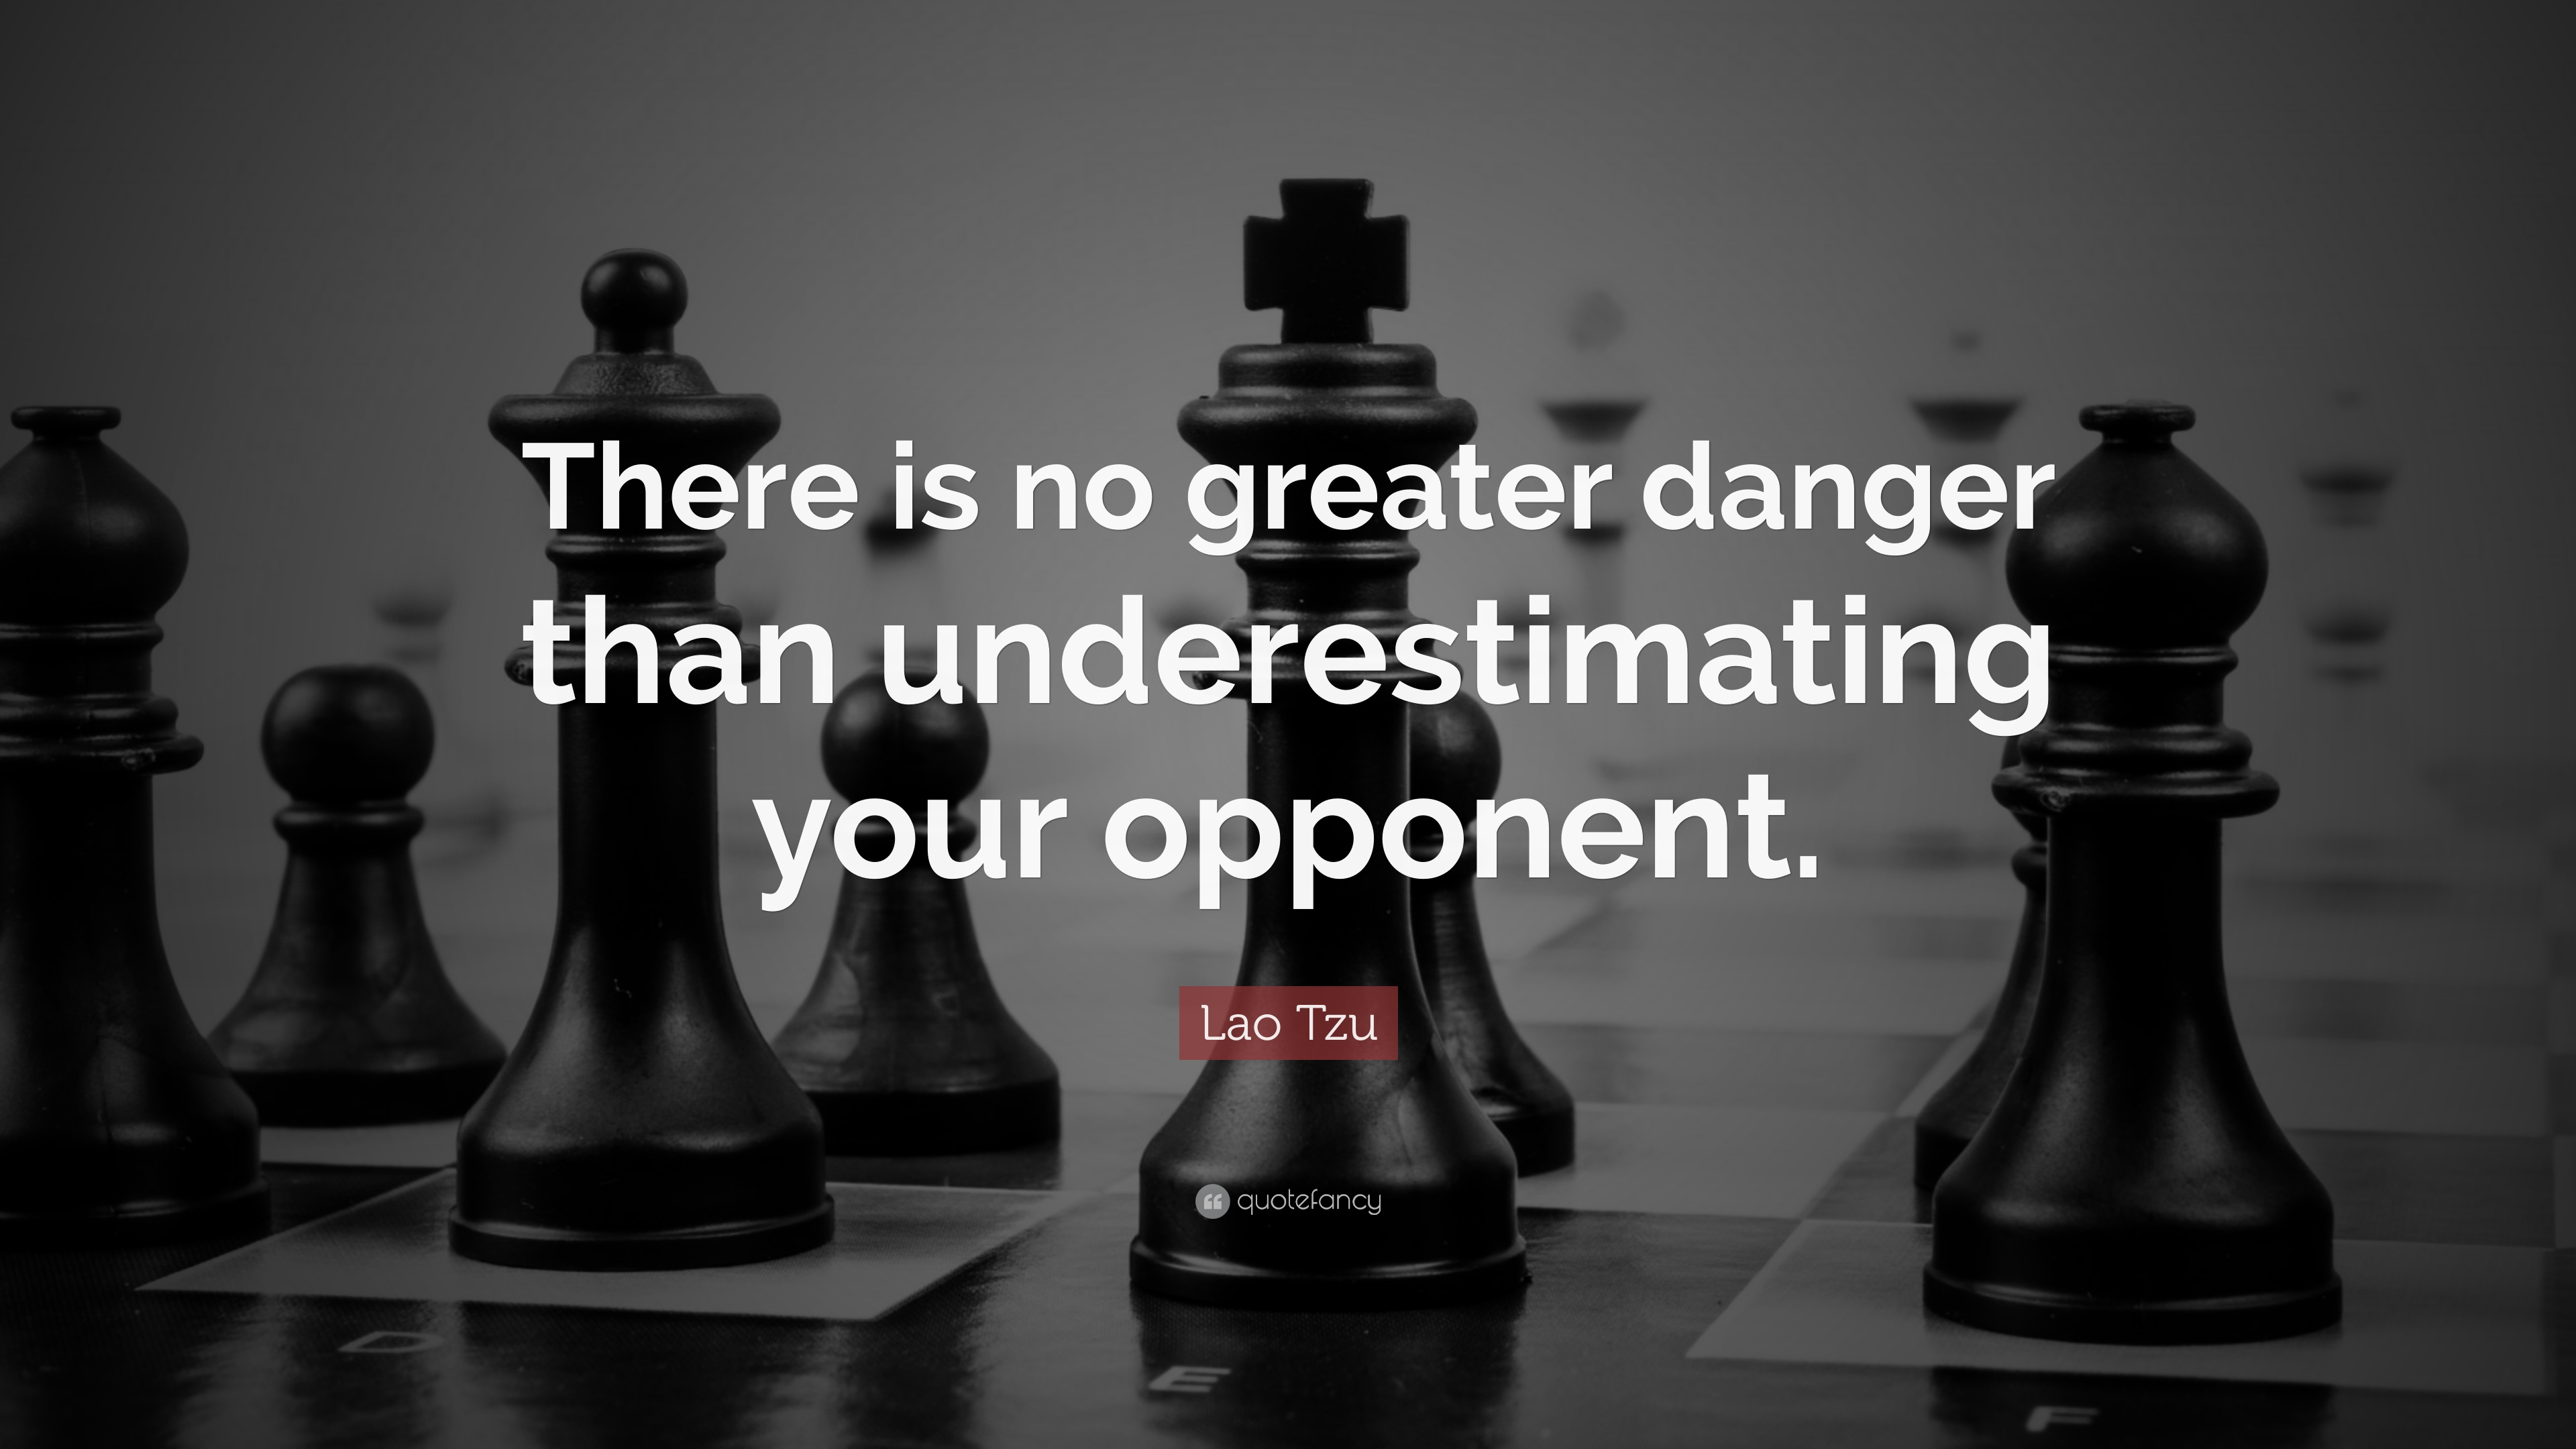 Chess Wallpaper Hd With Quotes Lao Tzu Quote There Is No Greater Danger Than